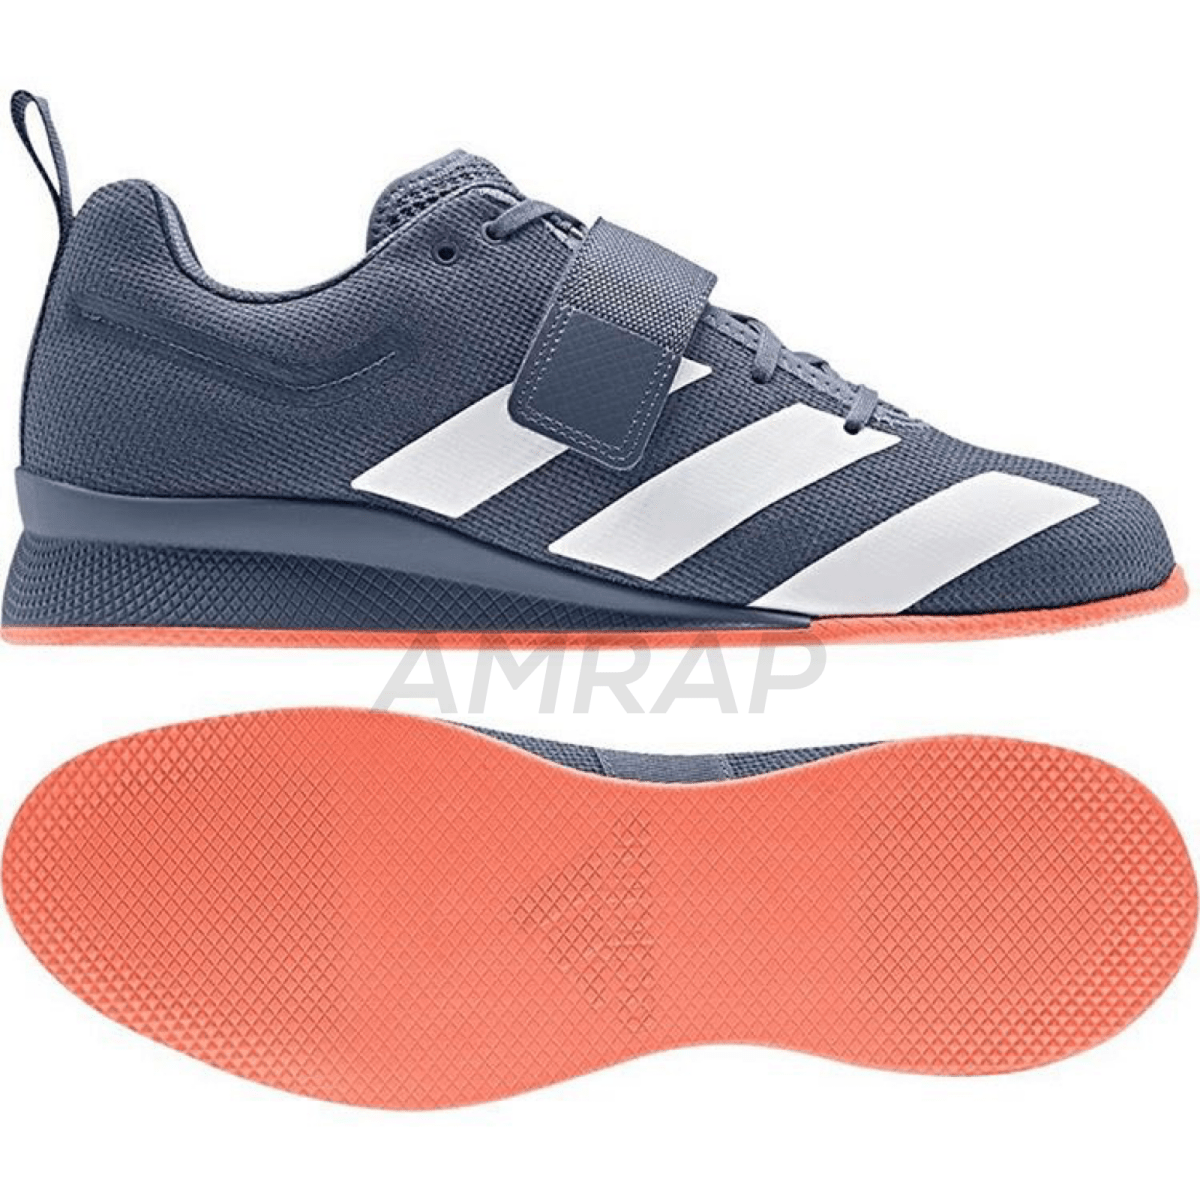 Adidas AdiPower 2 FIRST PICTURES!